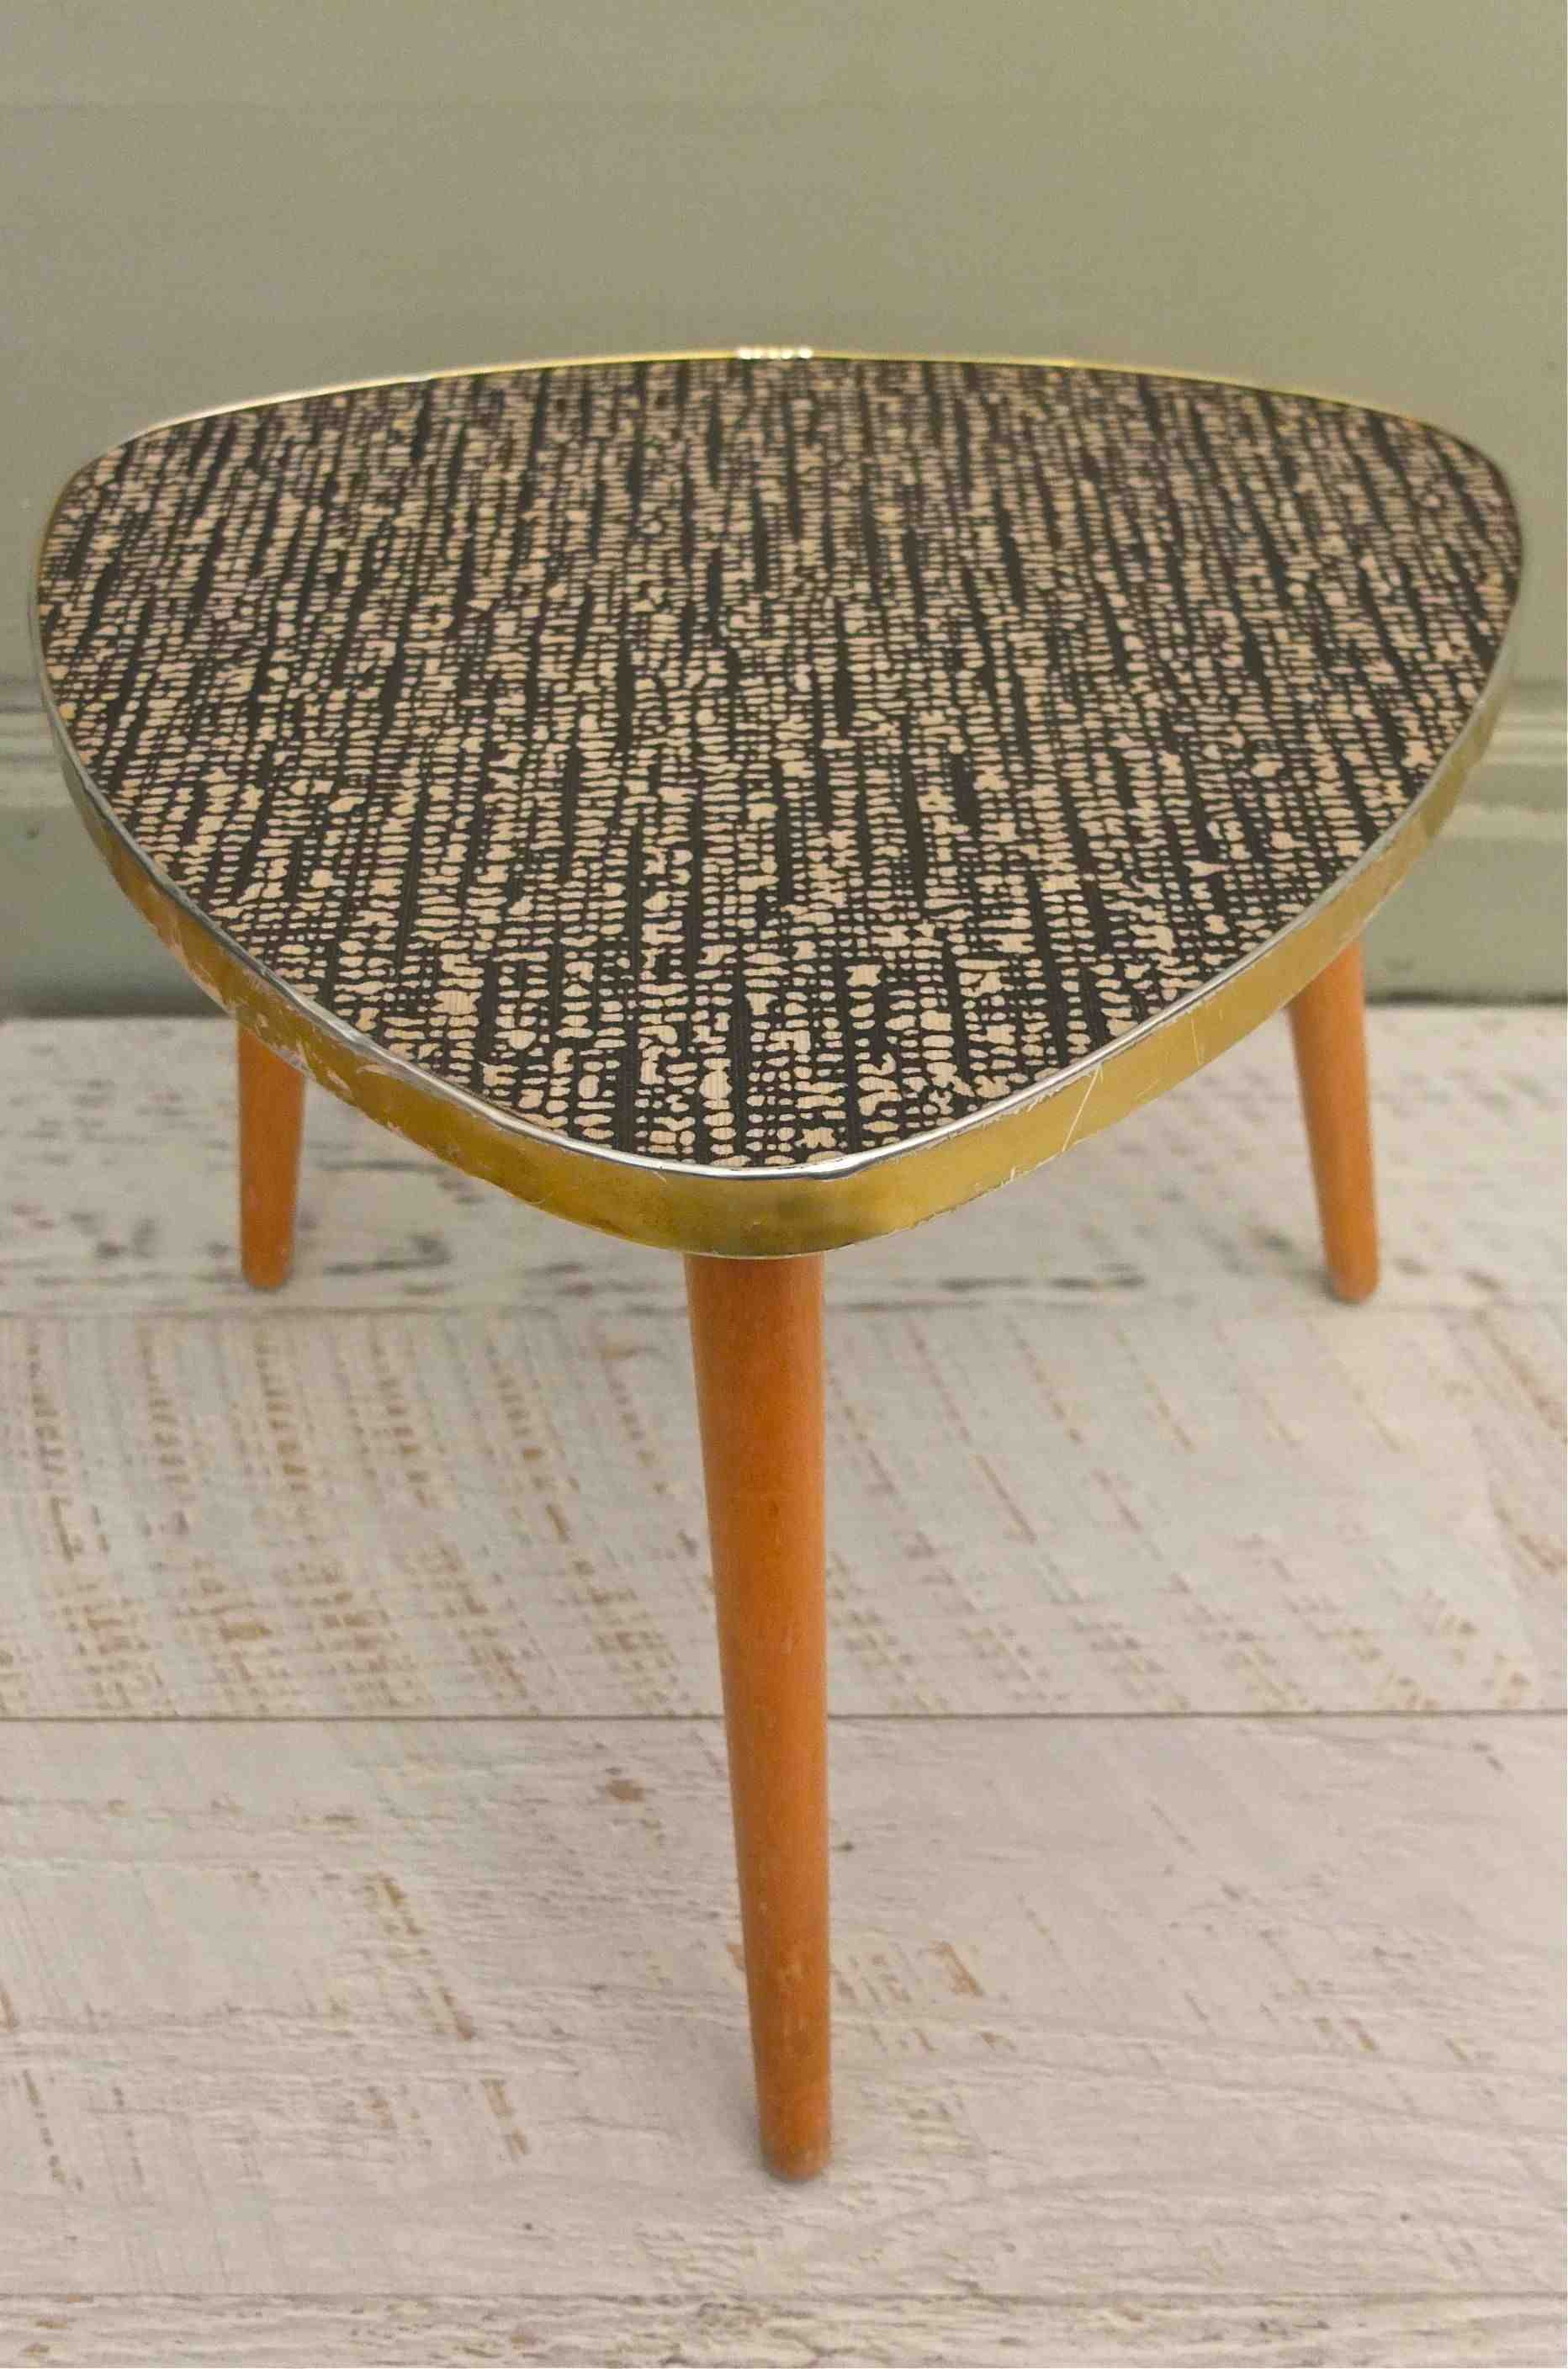 slavia vintage mobilier vintage table tripode tweed. Black Bedroom Furniture Sets. Home Design Ideas